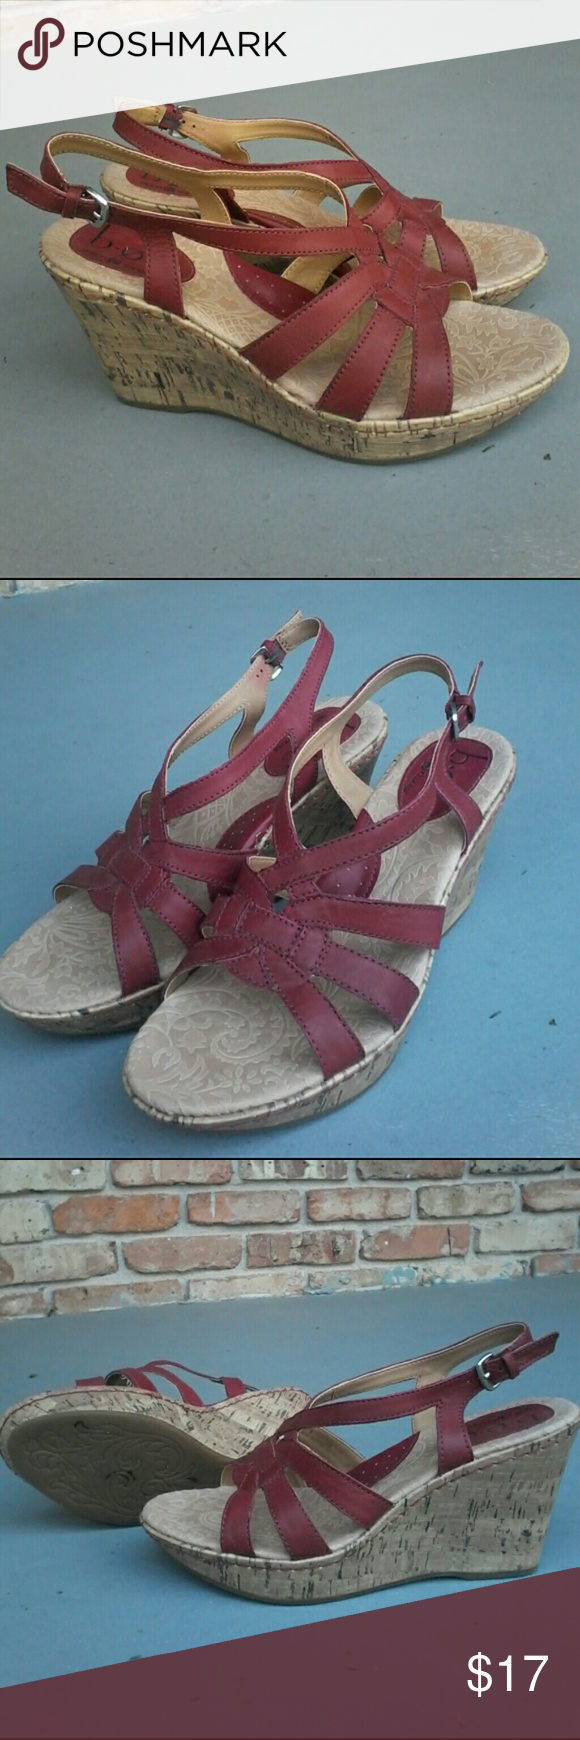 B.O.C. maroon leather platform sandals 4 inch This is a fantastic pair of boc born concept 4 inch maroon leather platform sandals in super clean condition at a very low price Born Shoes Platforms